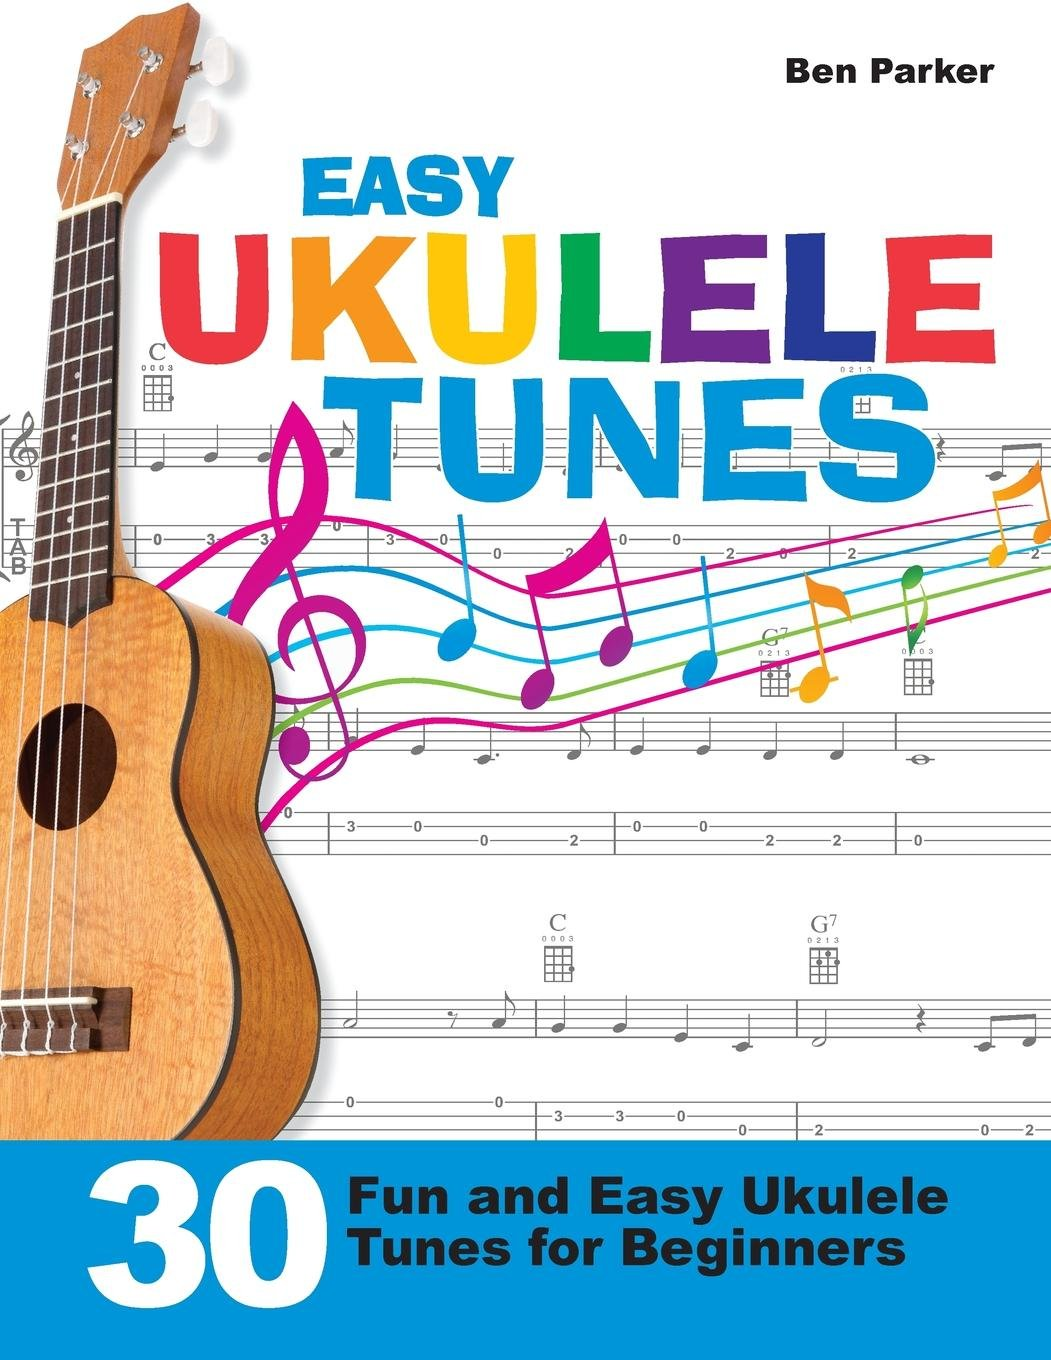 Amazon.fr - Easy Ukulele Tunes: 30 Fun and Easy Ukulele Tunes for Beginners  - Ben Parker - Livres